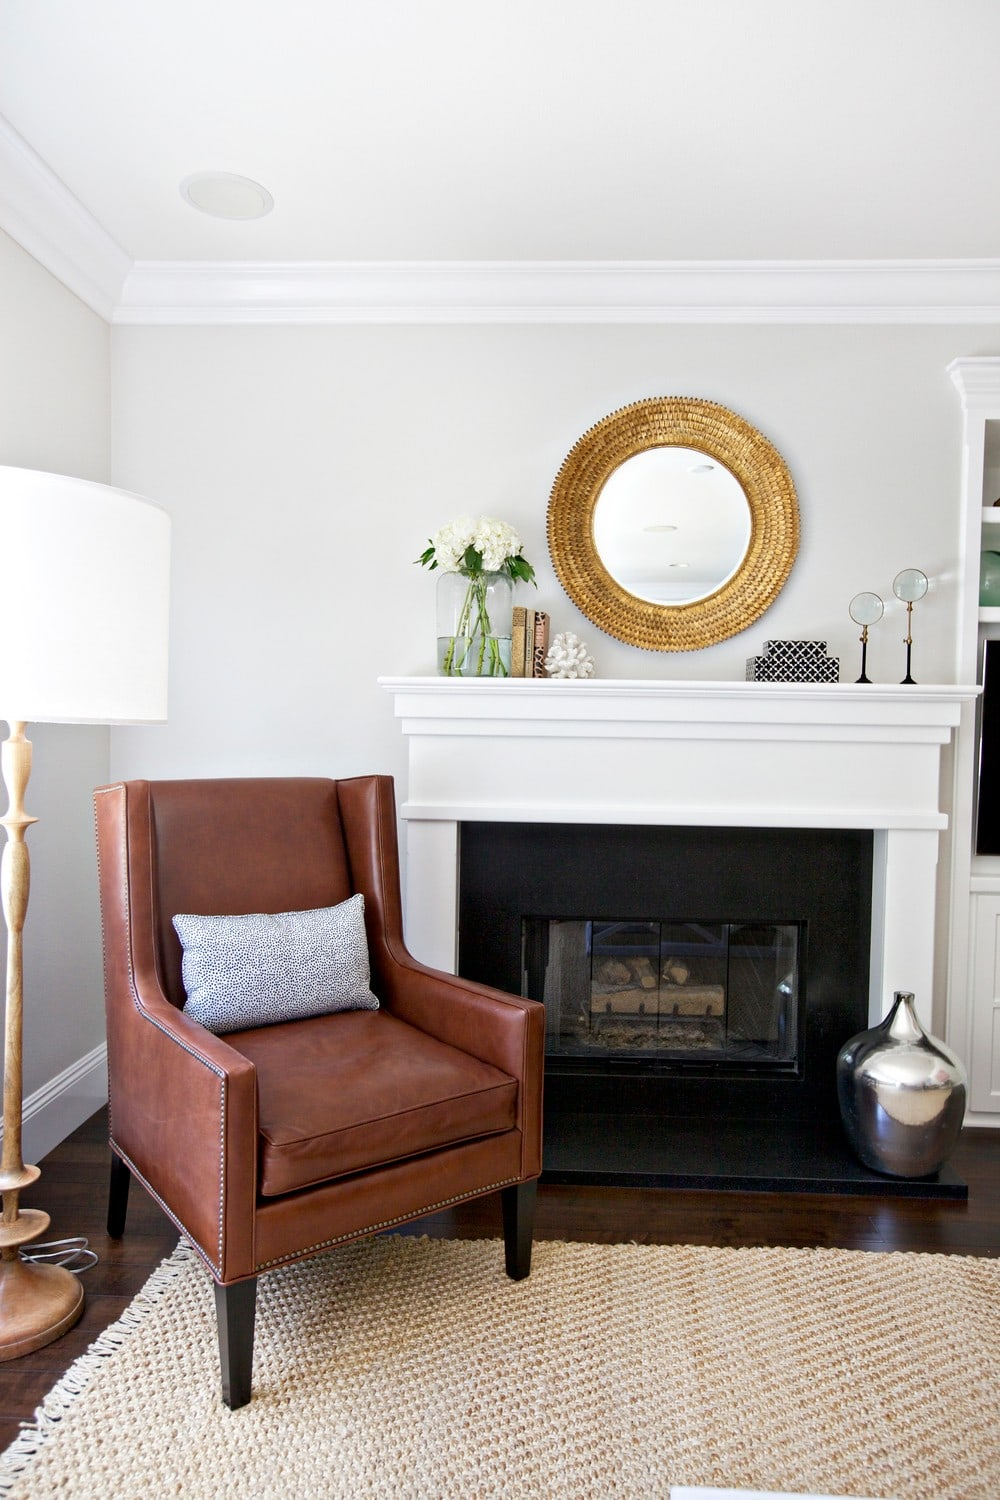 Neutral colors are preferred when trying to sell your house